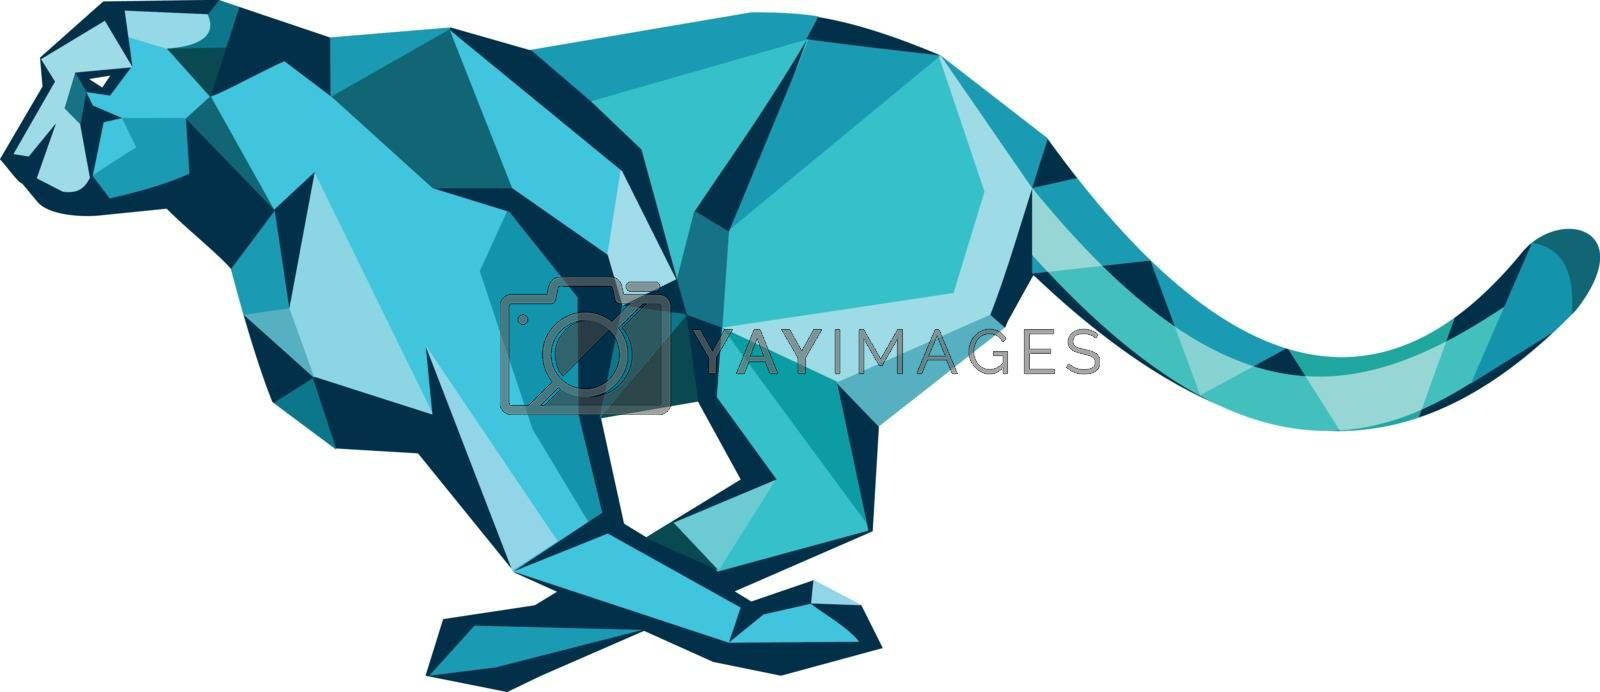 Low polygon style illustration of cheetah running for its prey viewed from side on isolated background.